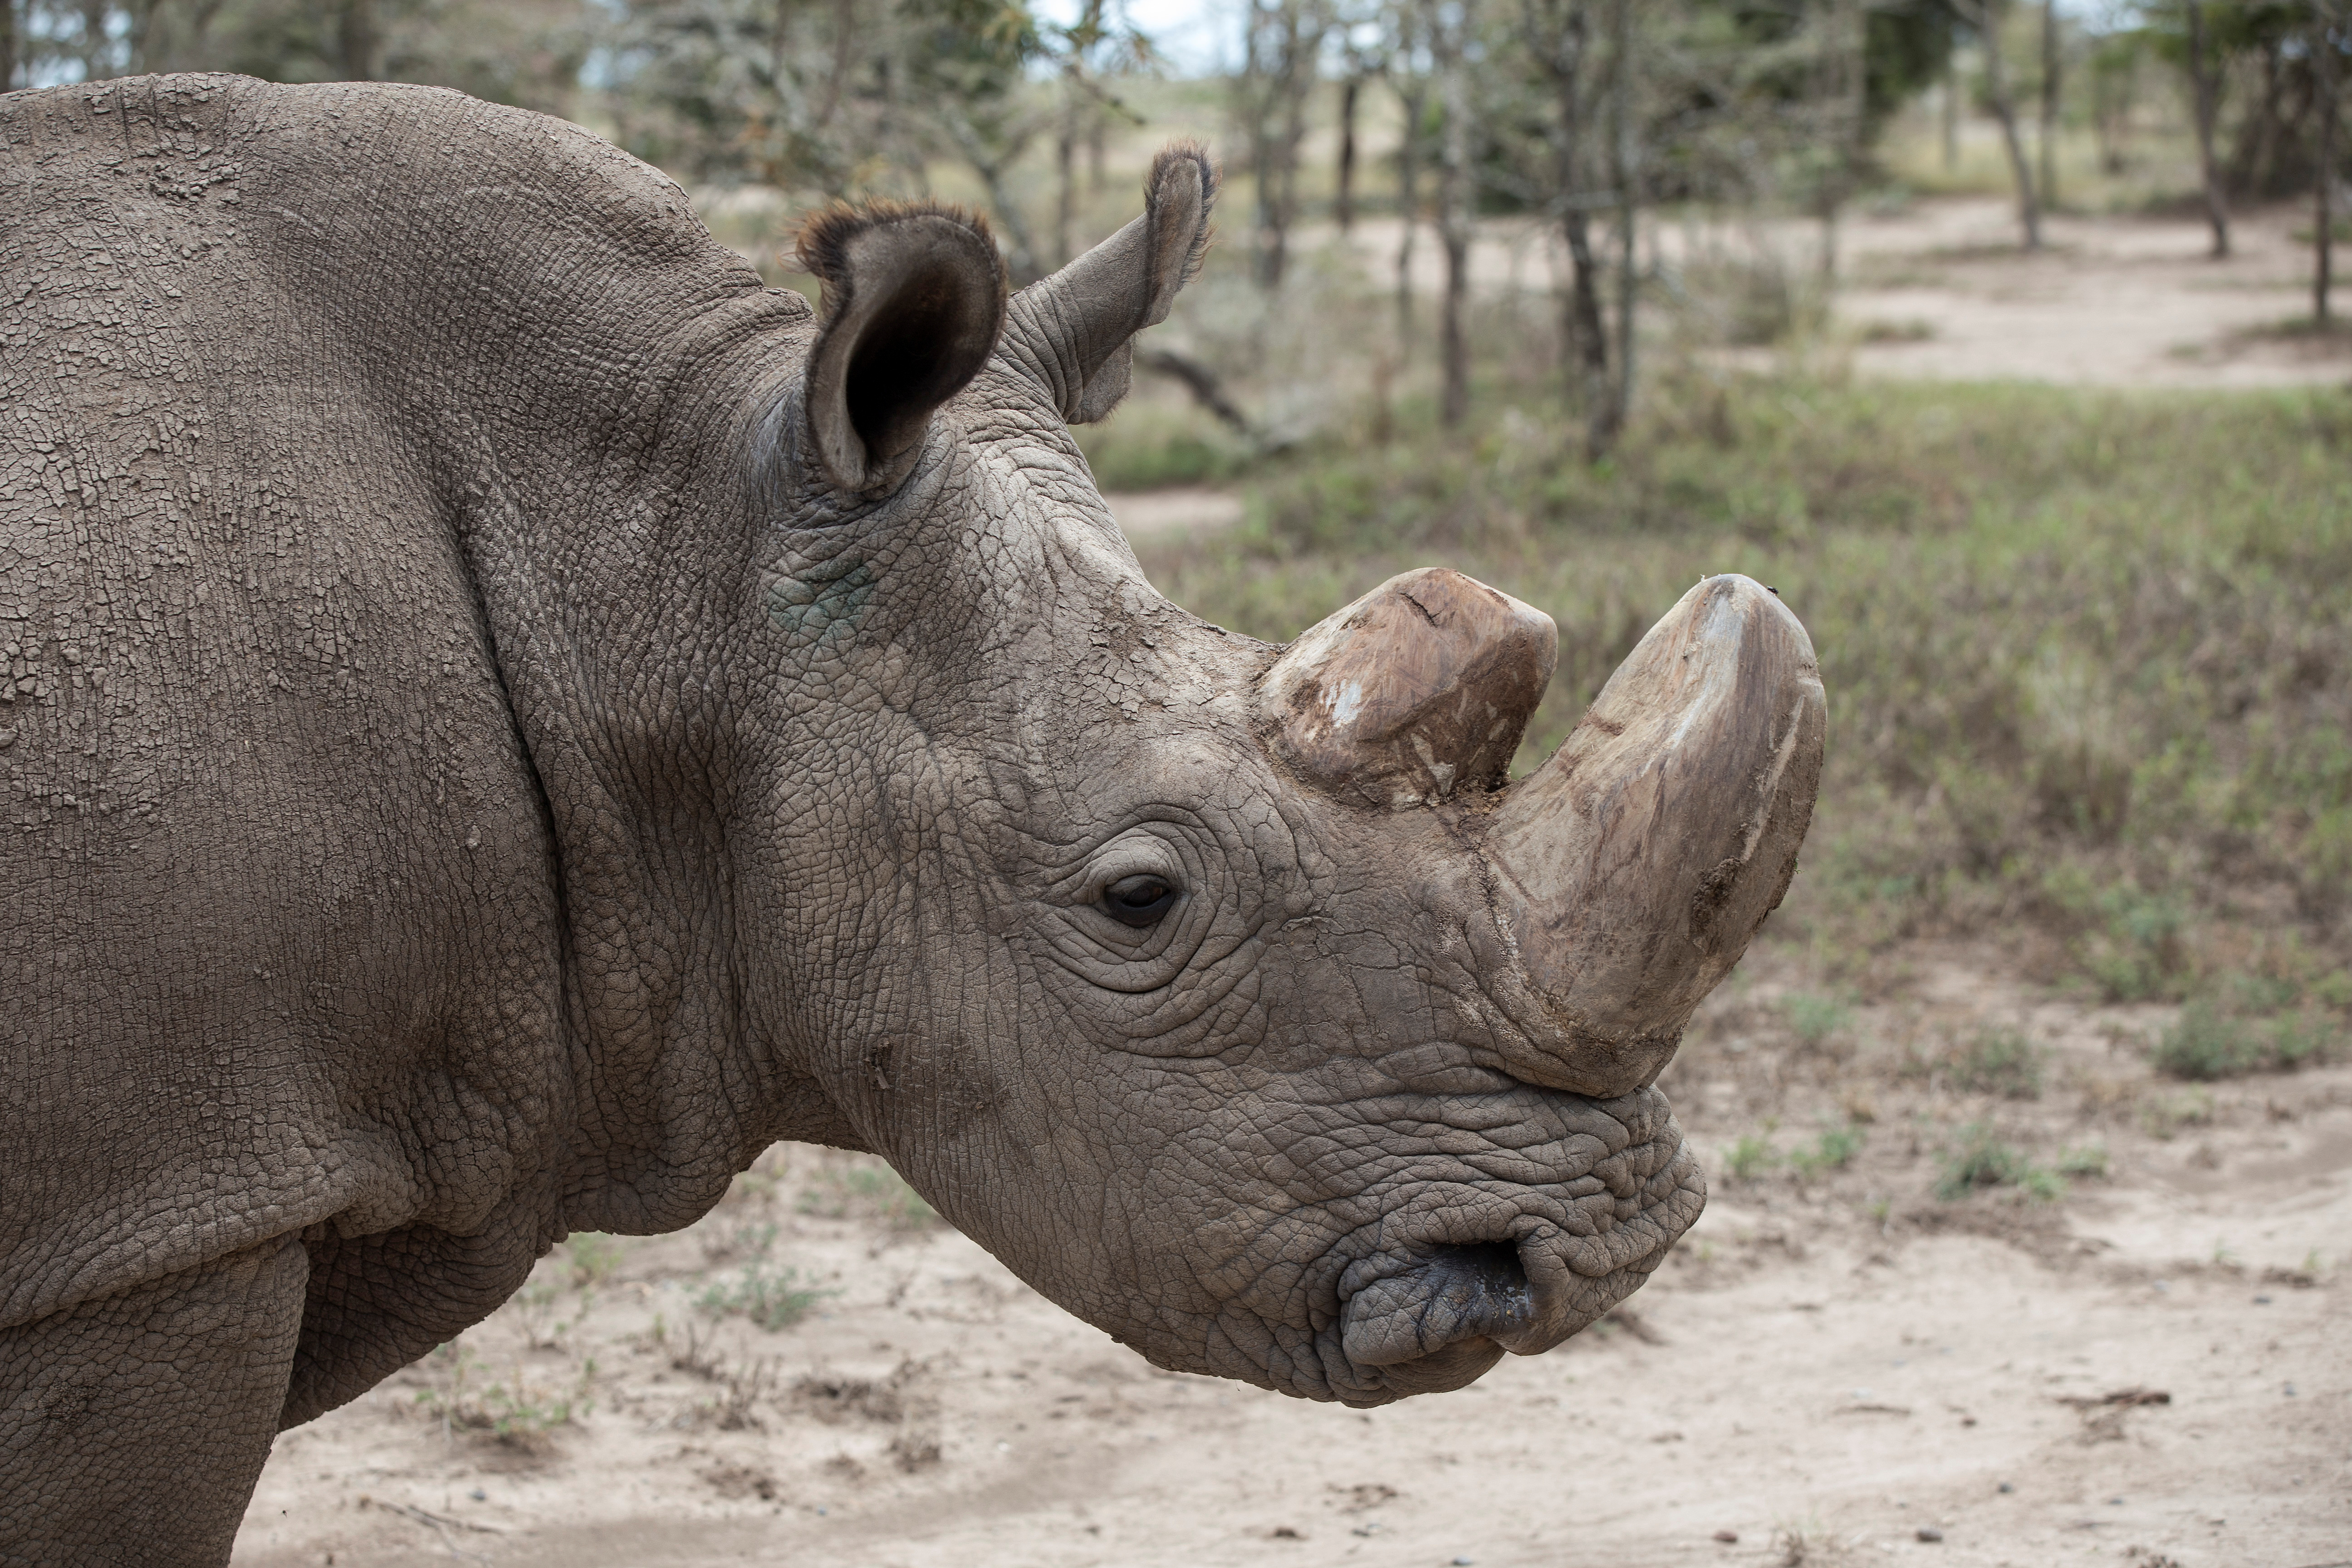 Sudan, the last male northern white rhino in the world, at the Ol Pejeta Conservancy in Laikipia National Park, Kenya on May 3, 2017.  Sudan was euthanized on March 19, 2018, officials at Ol Pejeta said.